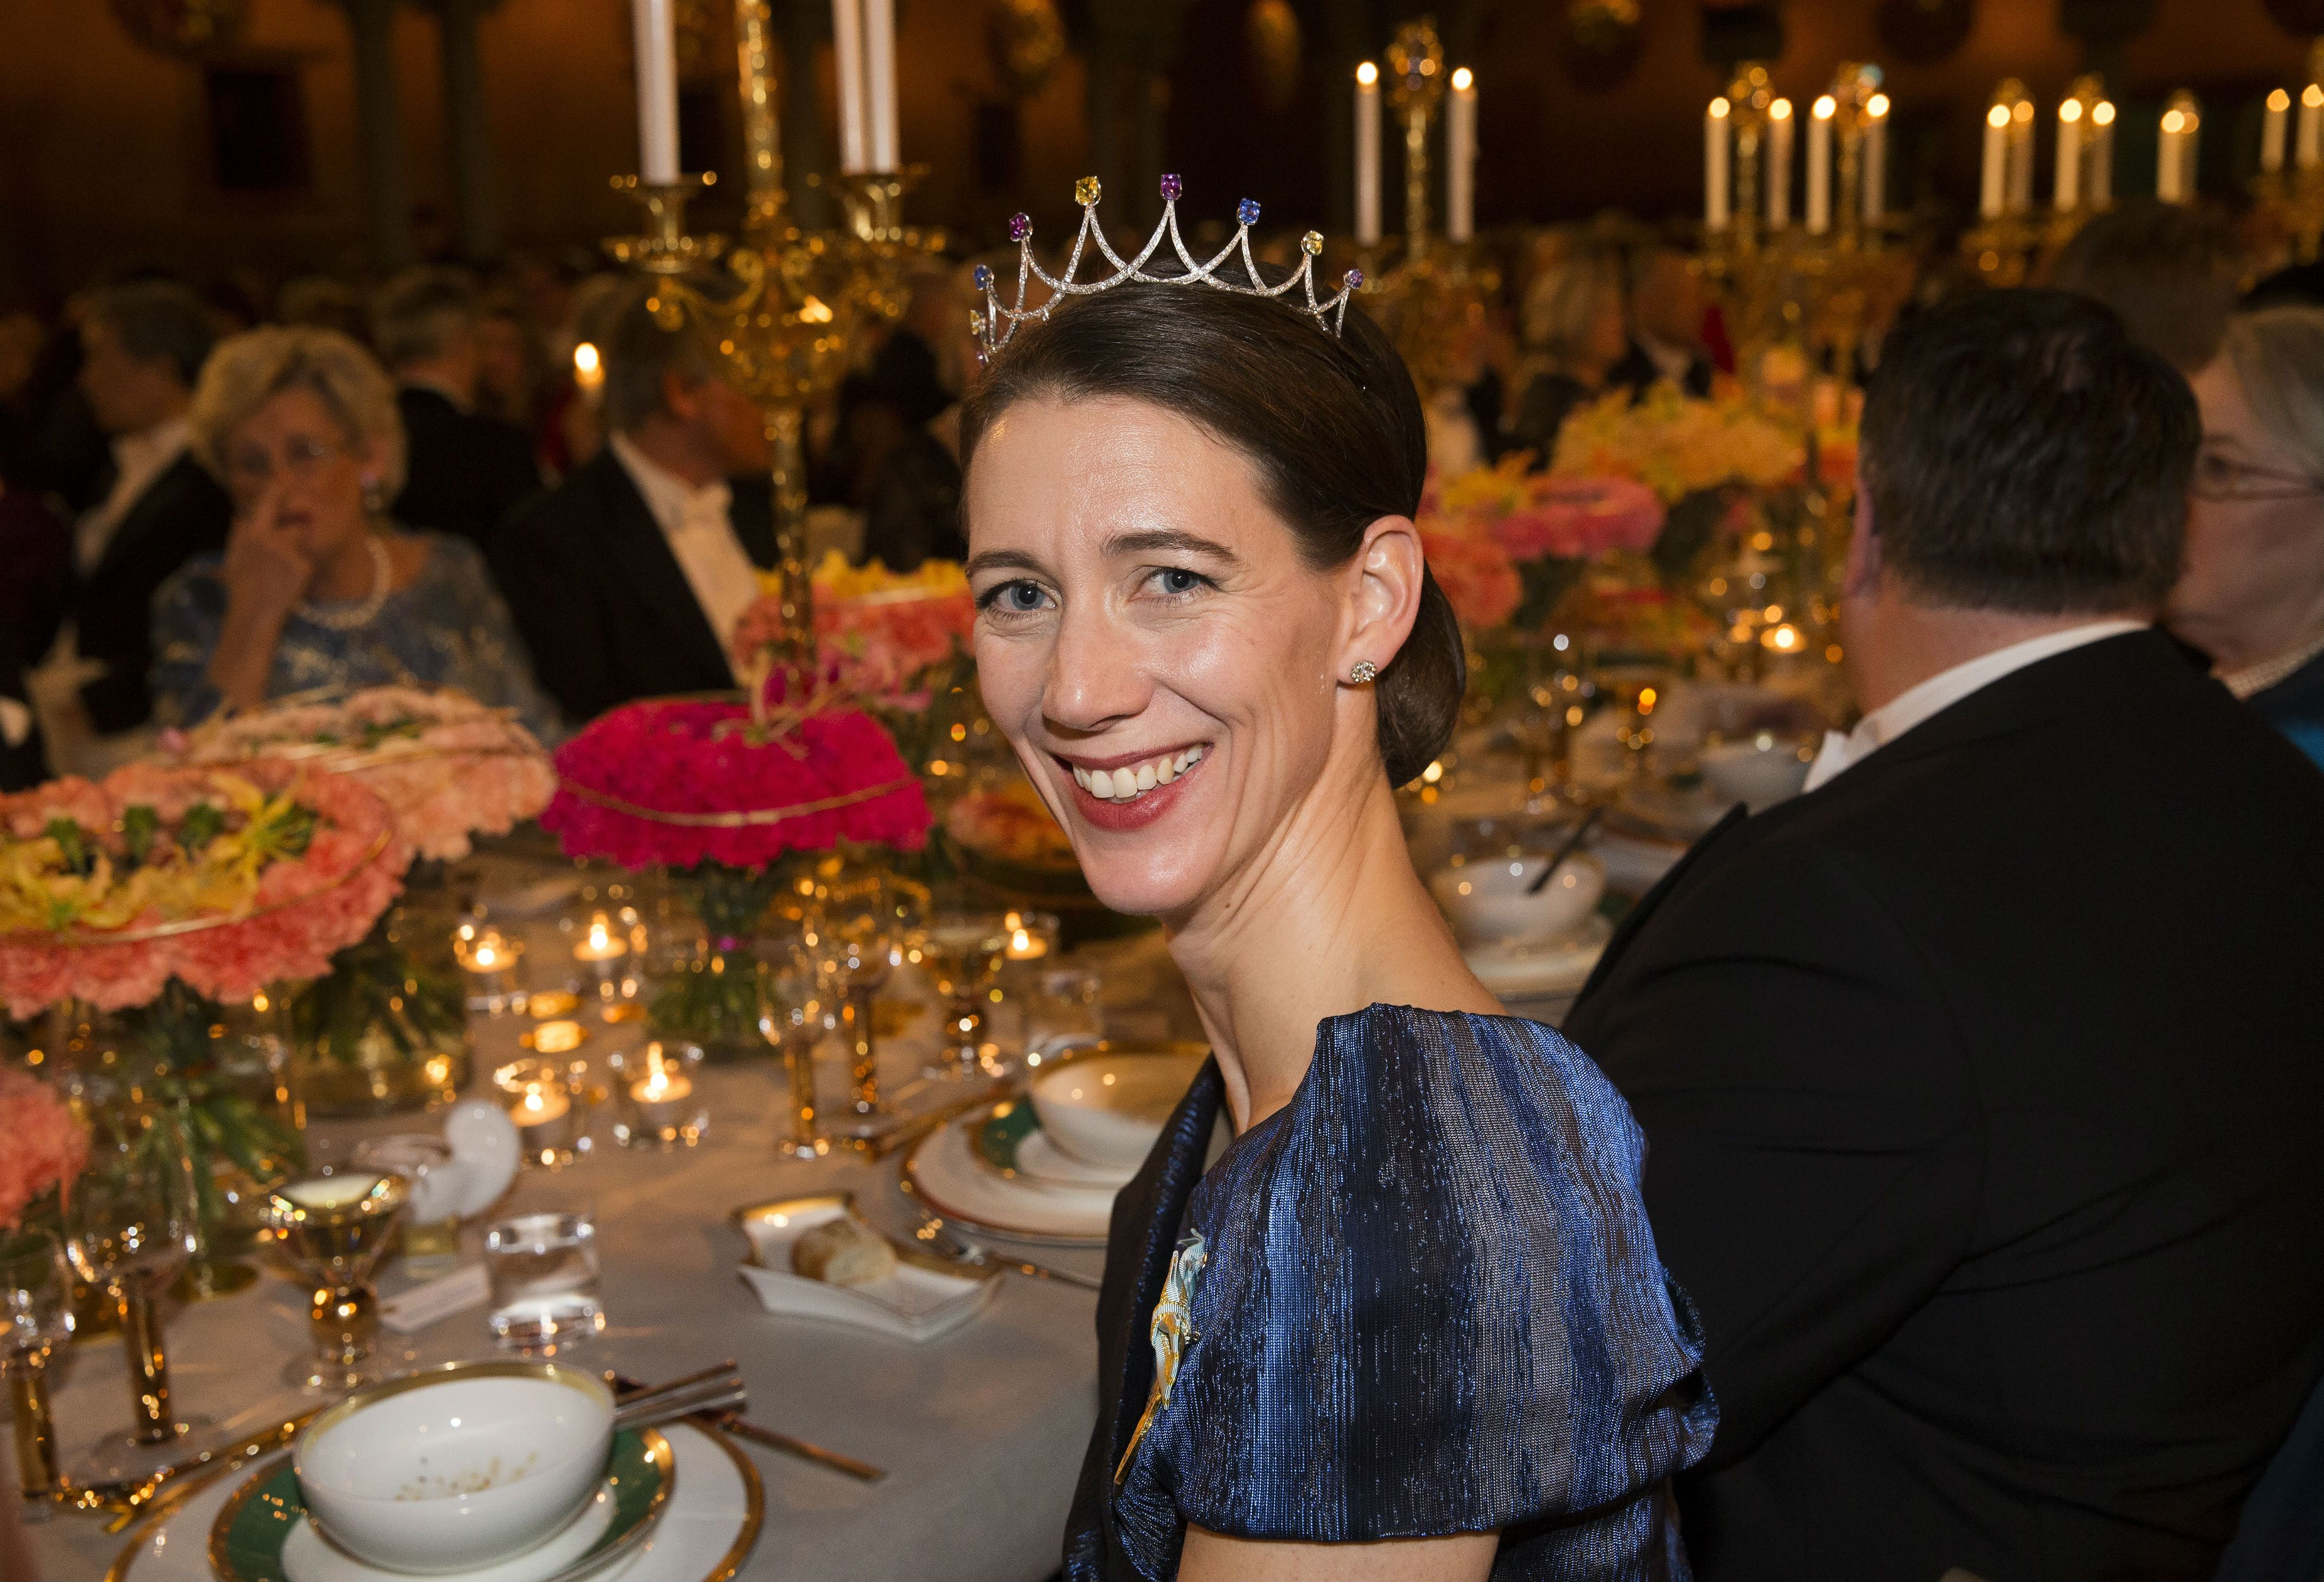 In the wake of the 2015 Noble Prize banquet, a good close up of Countess Bettina Bernadotte, wearing her multi-gem tiara